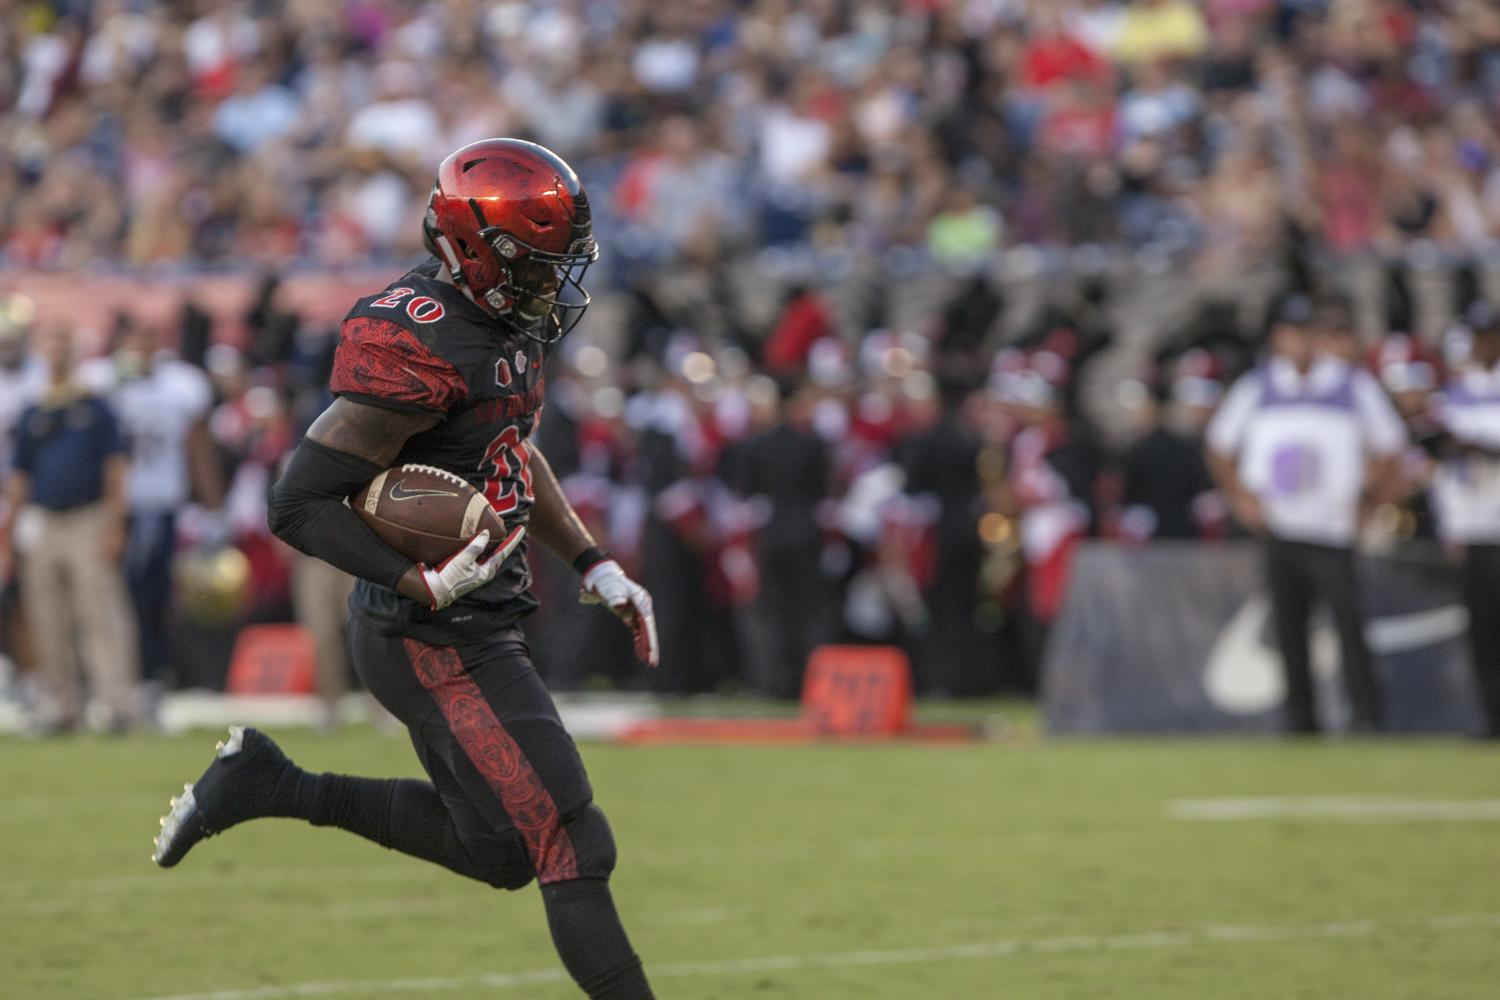 Senior running back Rashaad Penny prances for a touchdown during SDSU's 38-17 win over UC Davis.